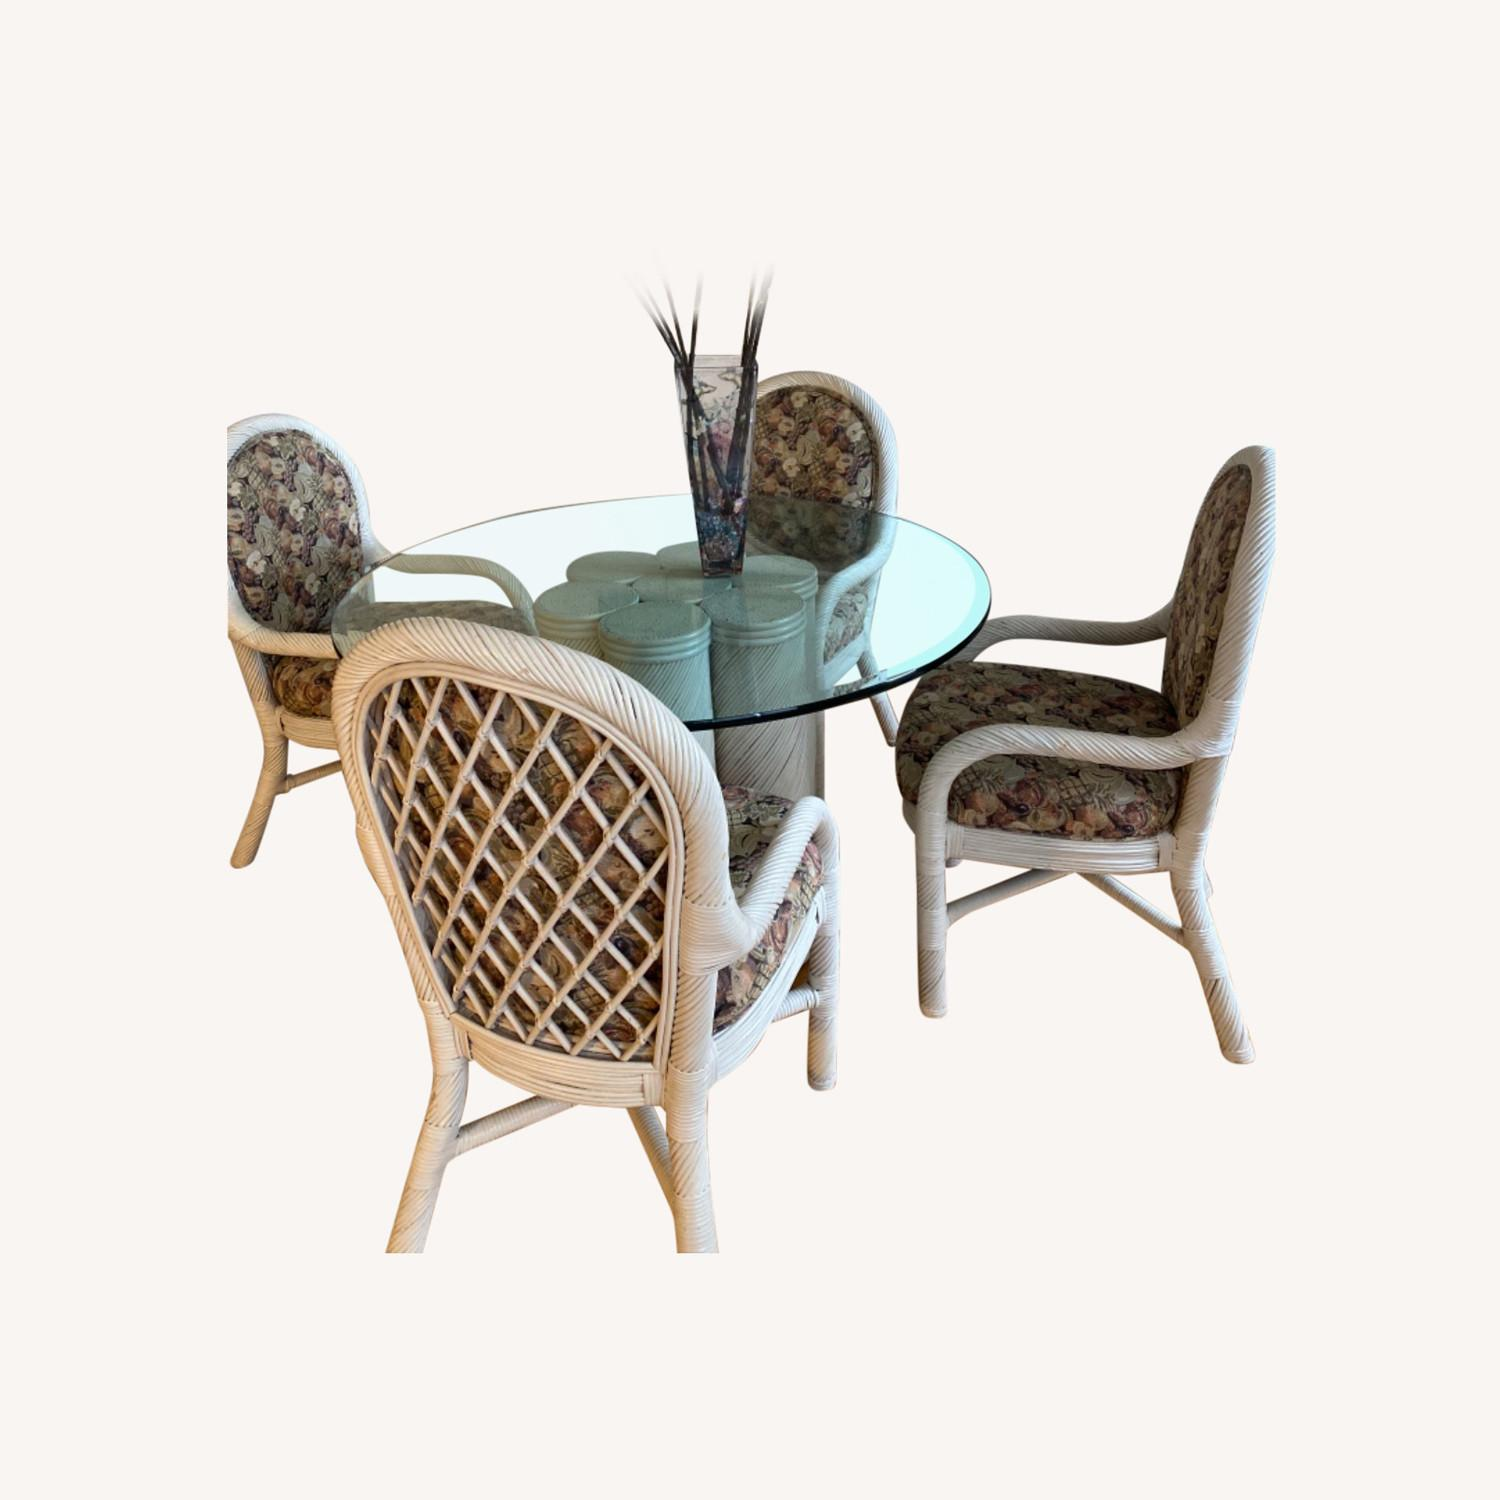 Wicker Upholstered Dining Table + 4 Chairs - image-6